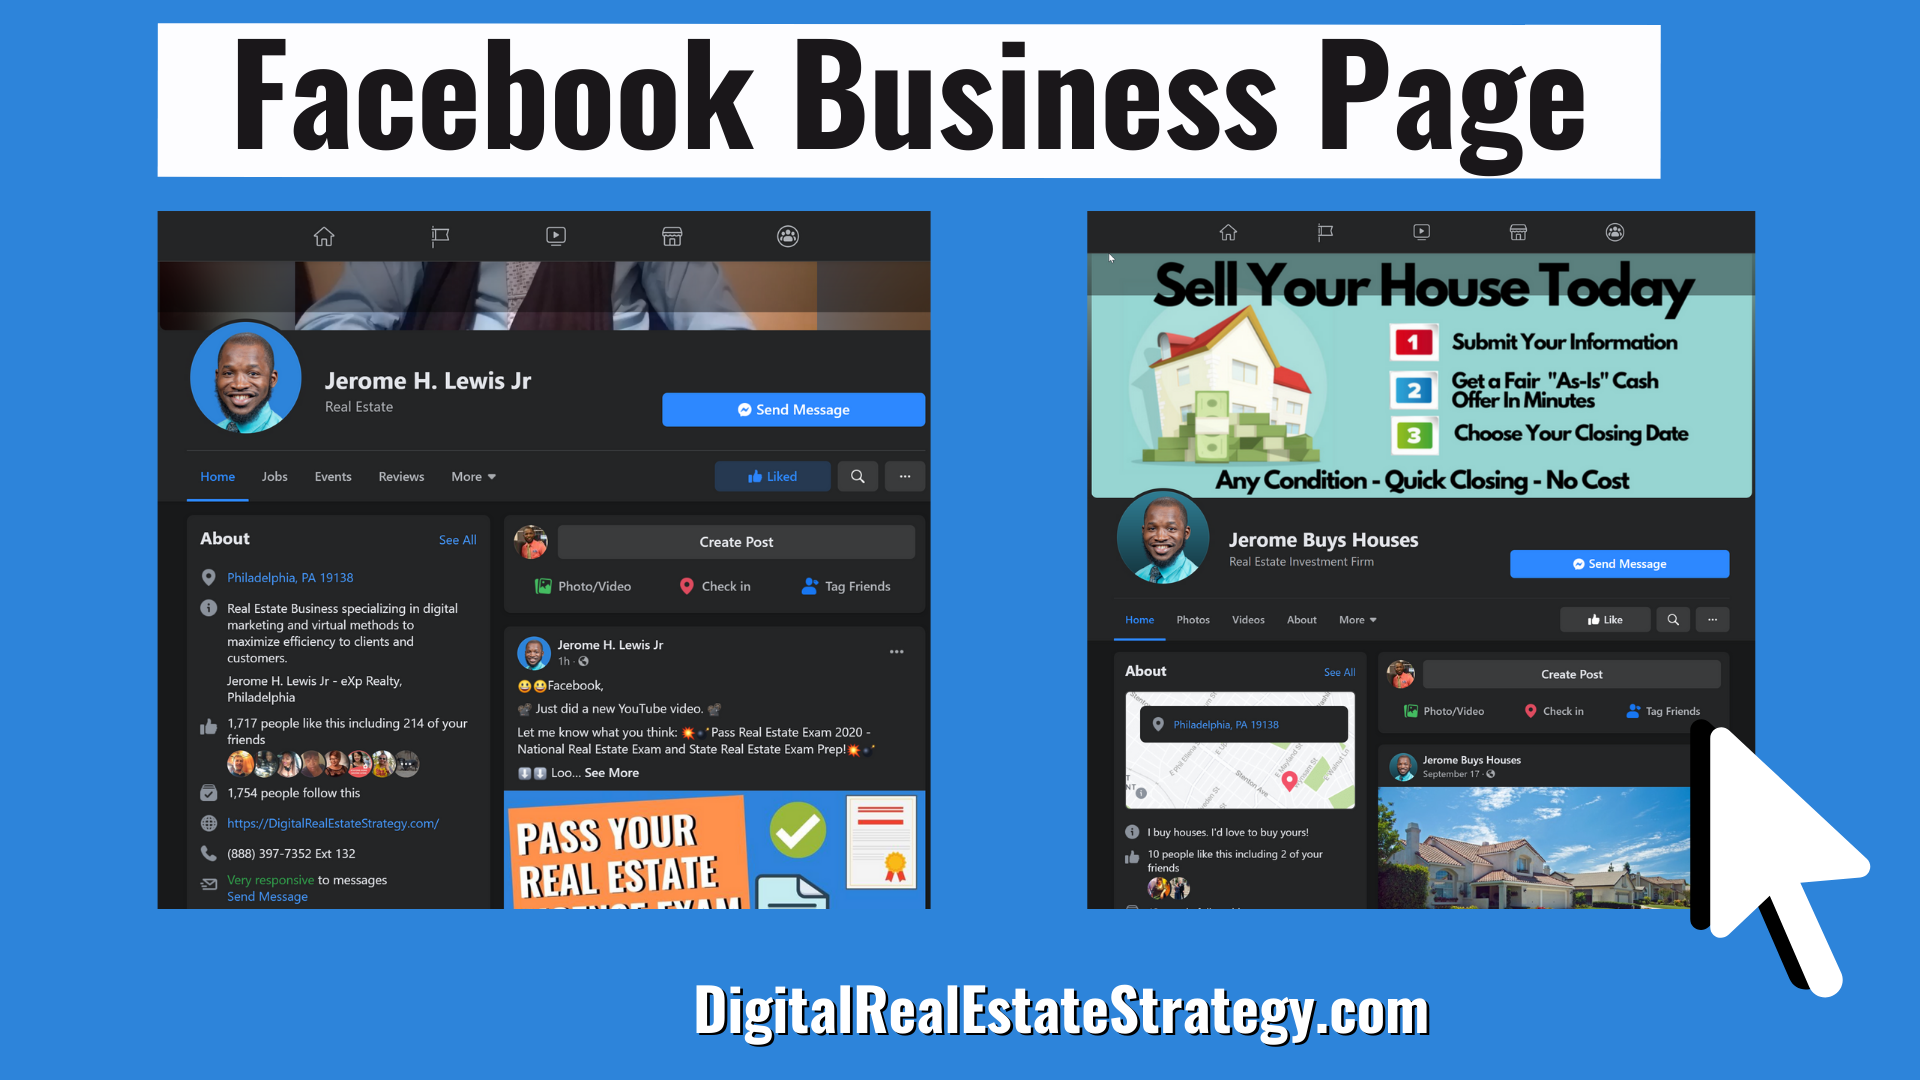 Facebook Business Page - Jerome Lewis - Motivated Seller Real Estate Leads Through Facebook - Featured Image